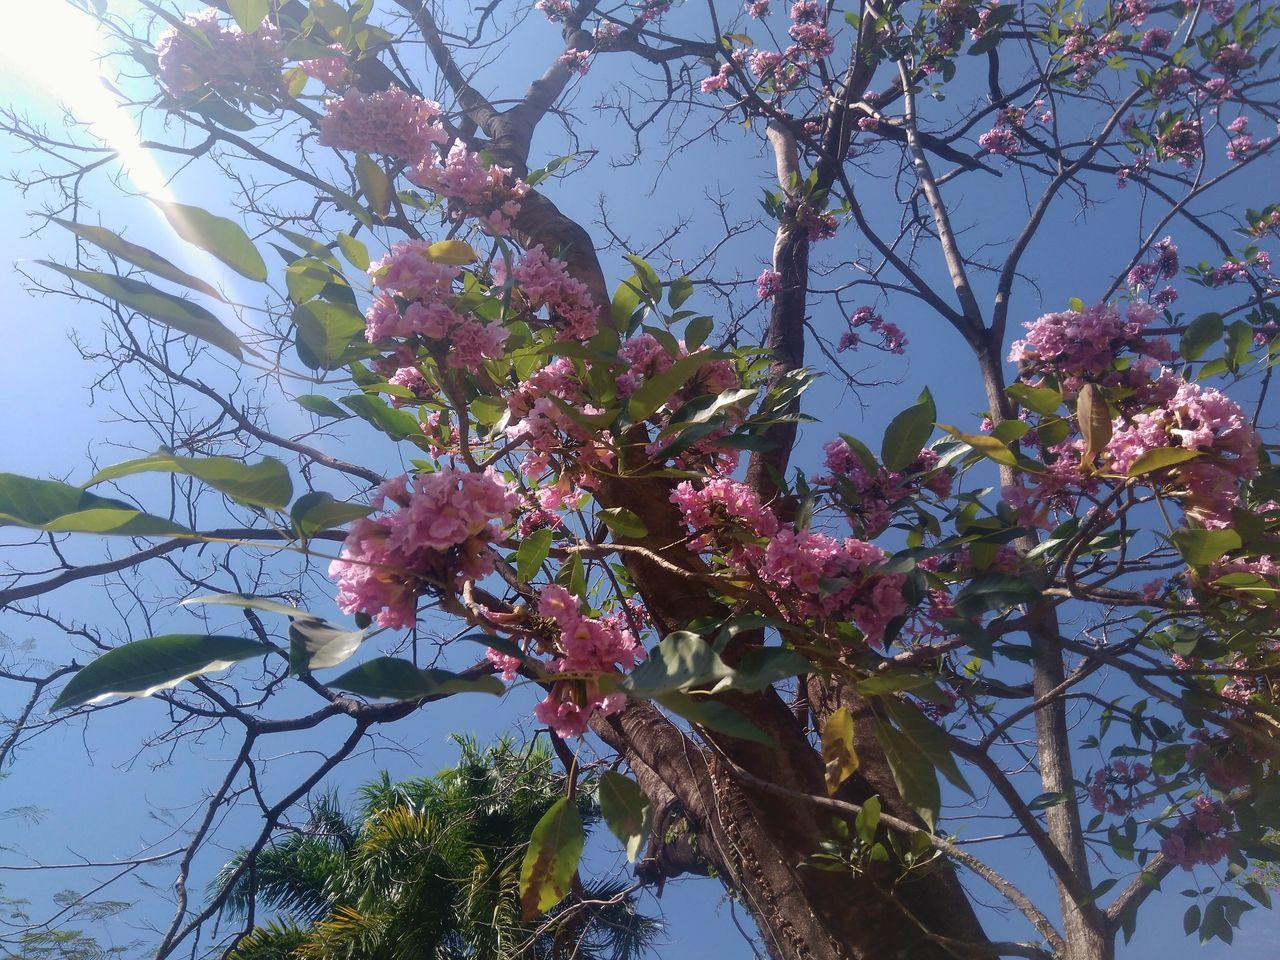 Hermosa creacion de Dios 🌼💮🌸 Tree Growth Nature Low Angle View Pink Color Sky Outdoors Close-up Fragility Flower Freshness Beauty In Nature Branch No People Day EyeEm EyeEm Gallery F4F Folllw4folllw